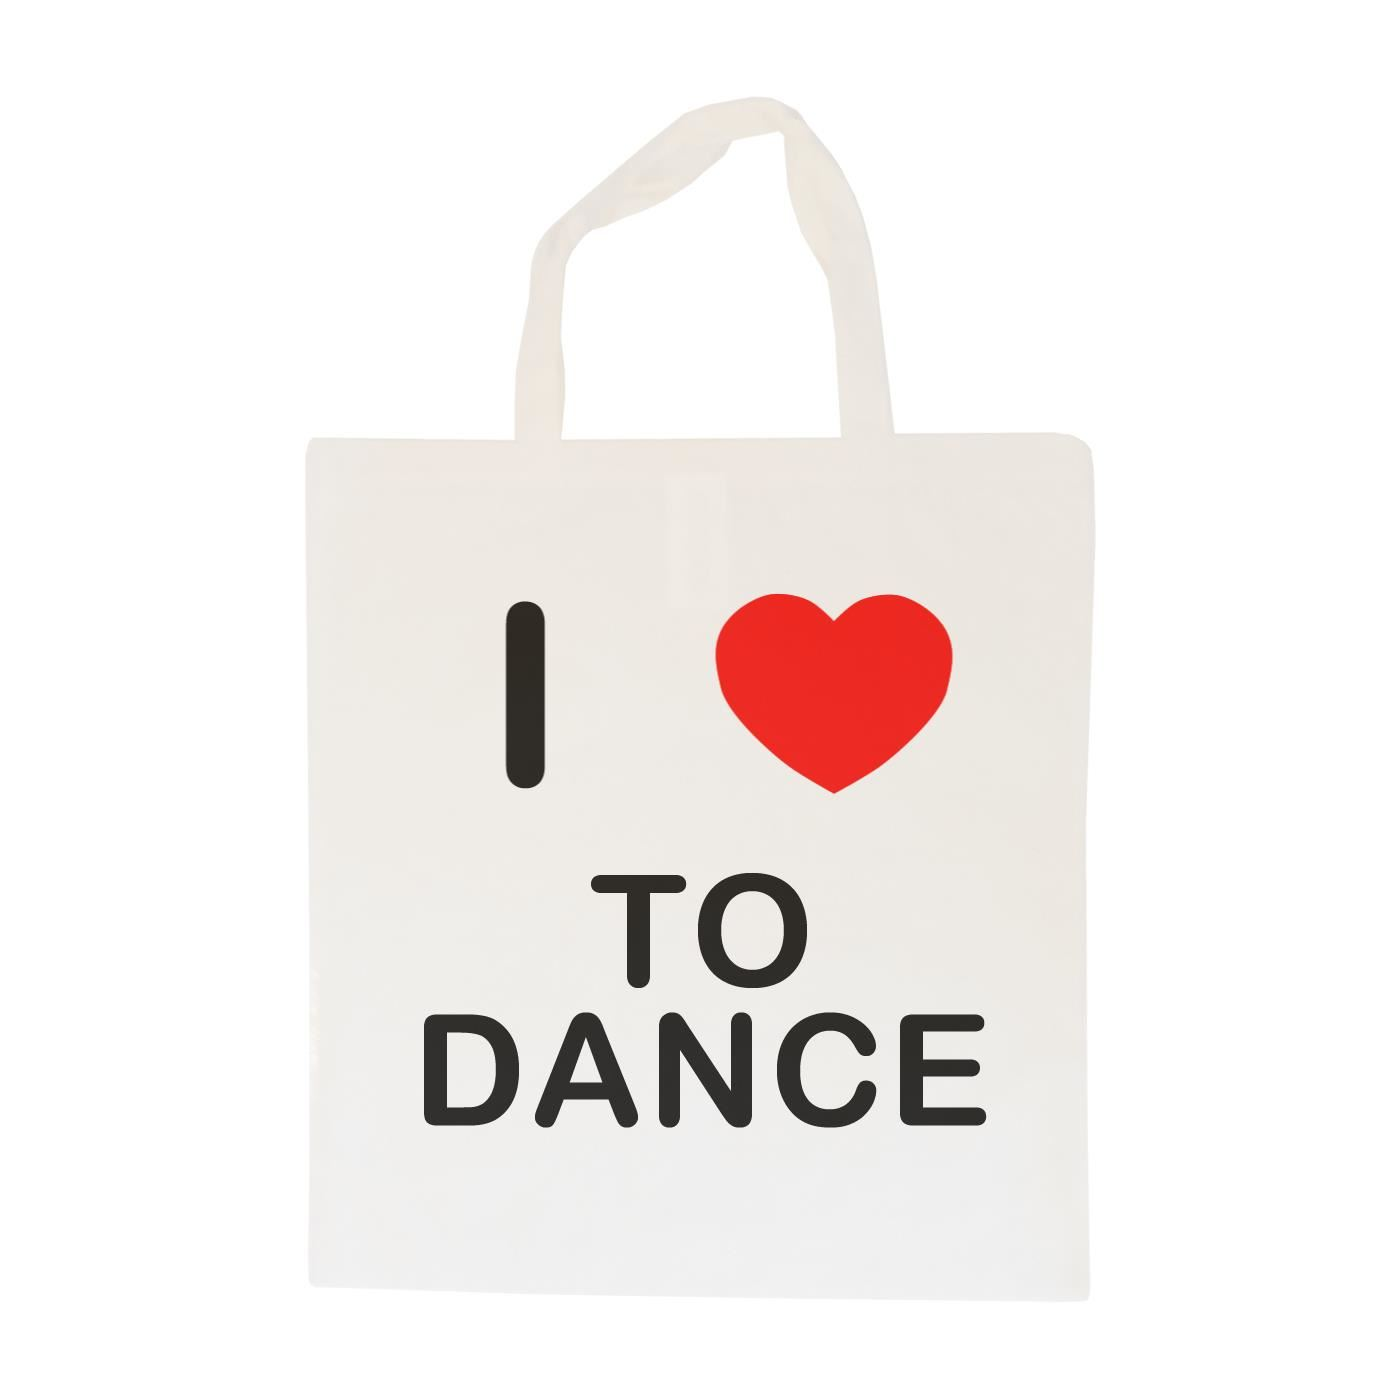 I Love To Dance - Cotton Bag | Size choice Tote, Shopper or Sling